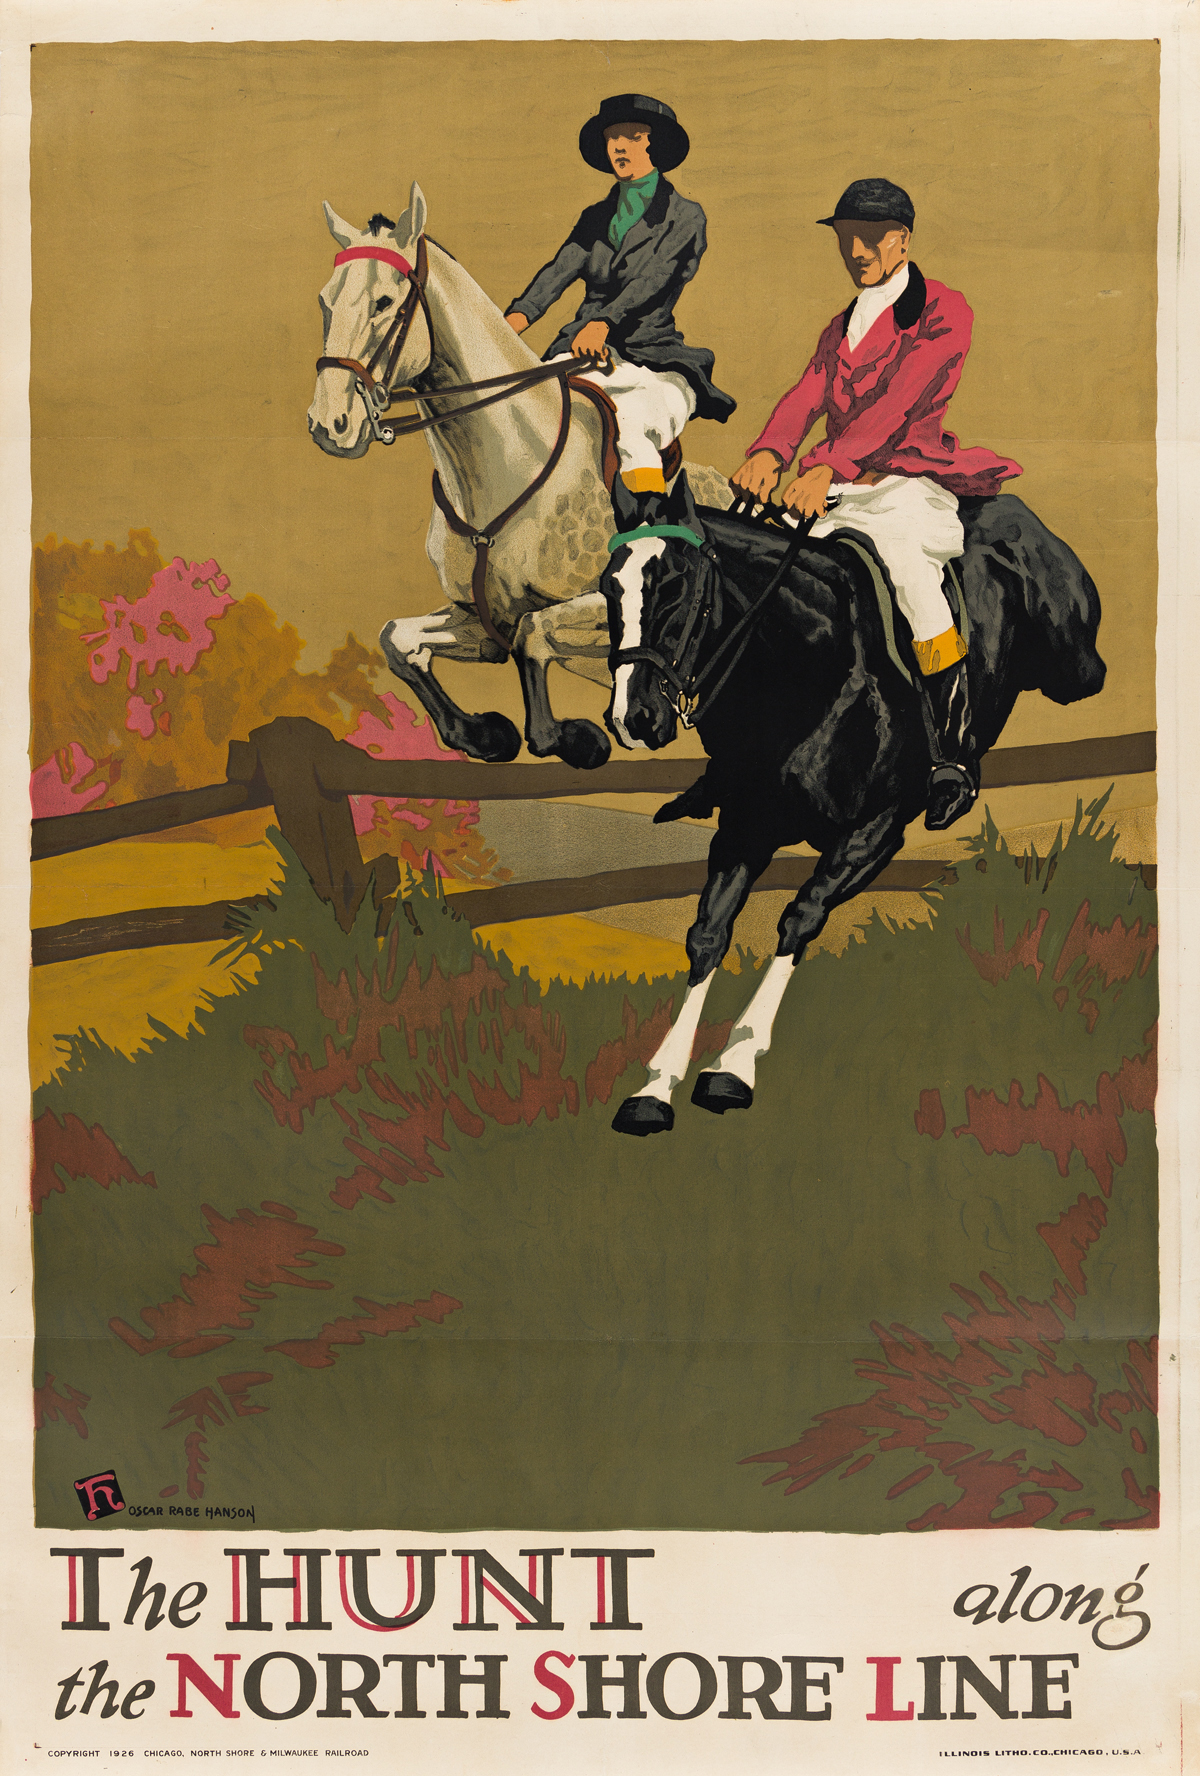 OSCAR RABE HANSON (1901-1926).  THE HUNT ALONG THE NORTH SHORE LINE. 1926. 42x28 inches, 106x71 cm. Illinois Litho. Co., Chicago.